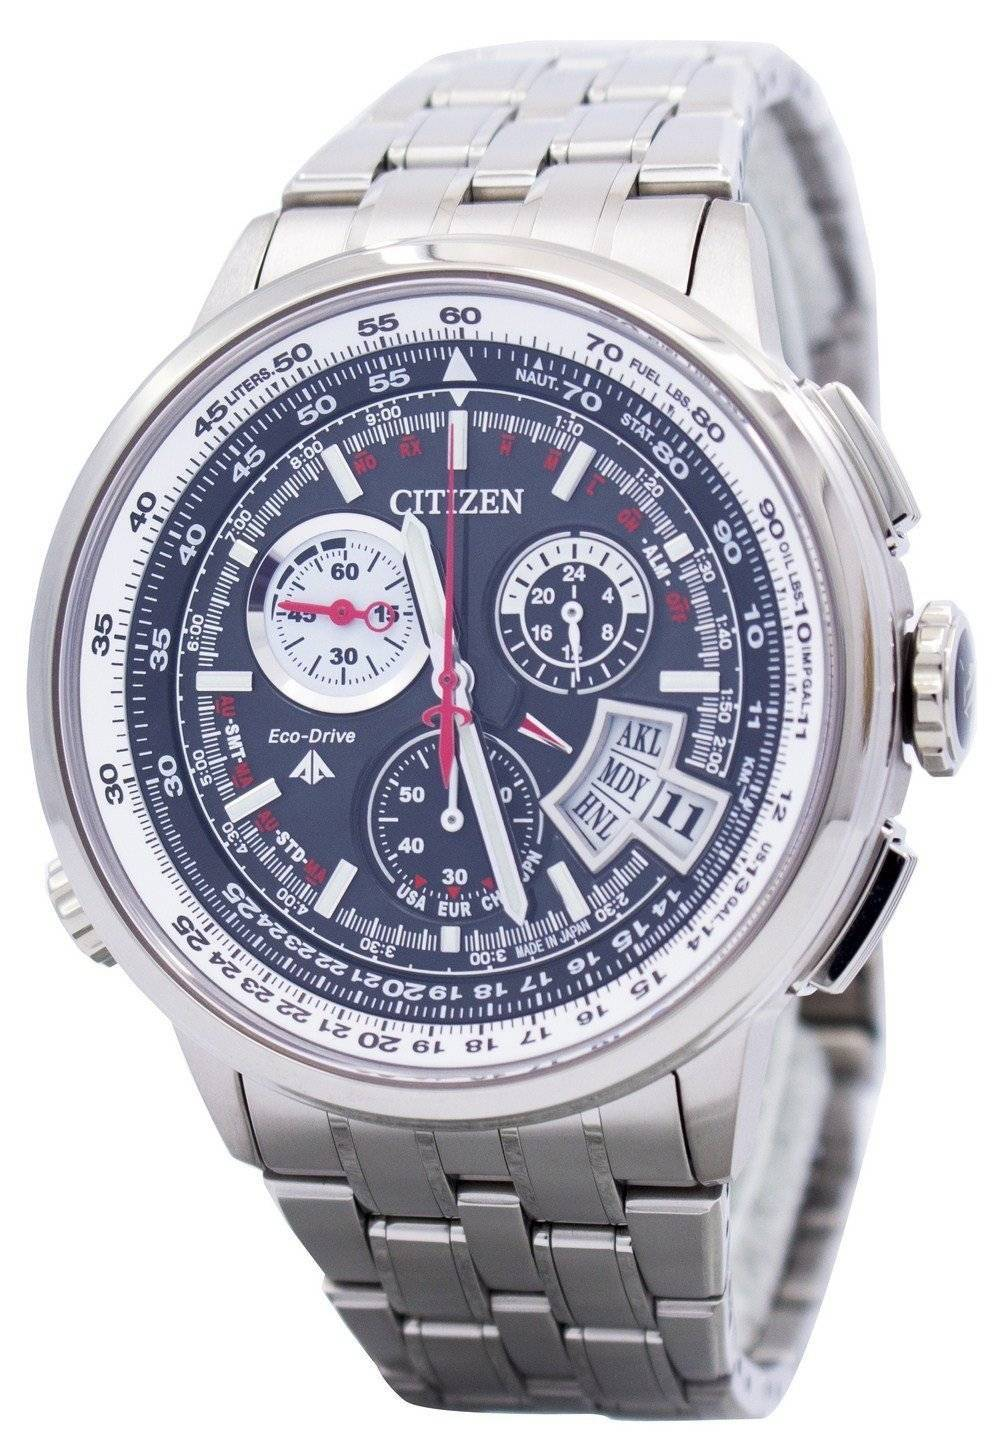 Details about Citizen Titanium Promaster Radio Controlled BY0010-52E BY0010  World Time 2677151e8b3